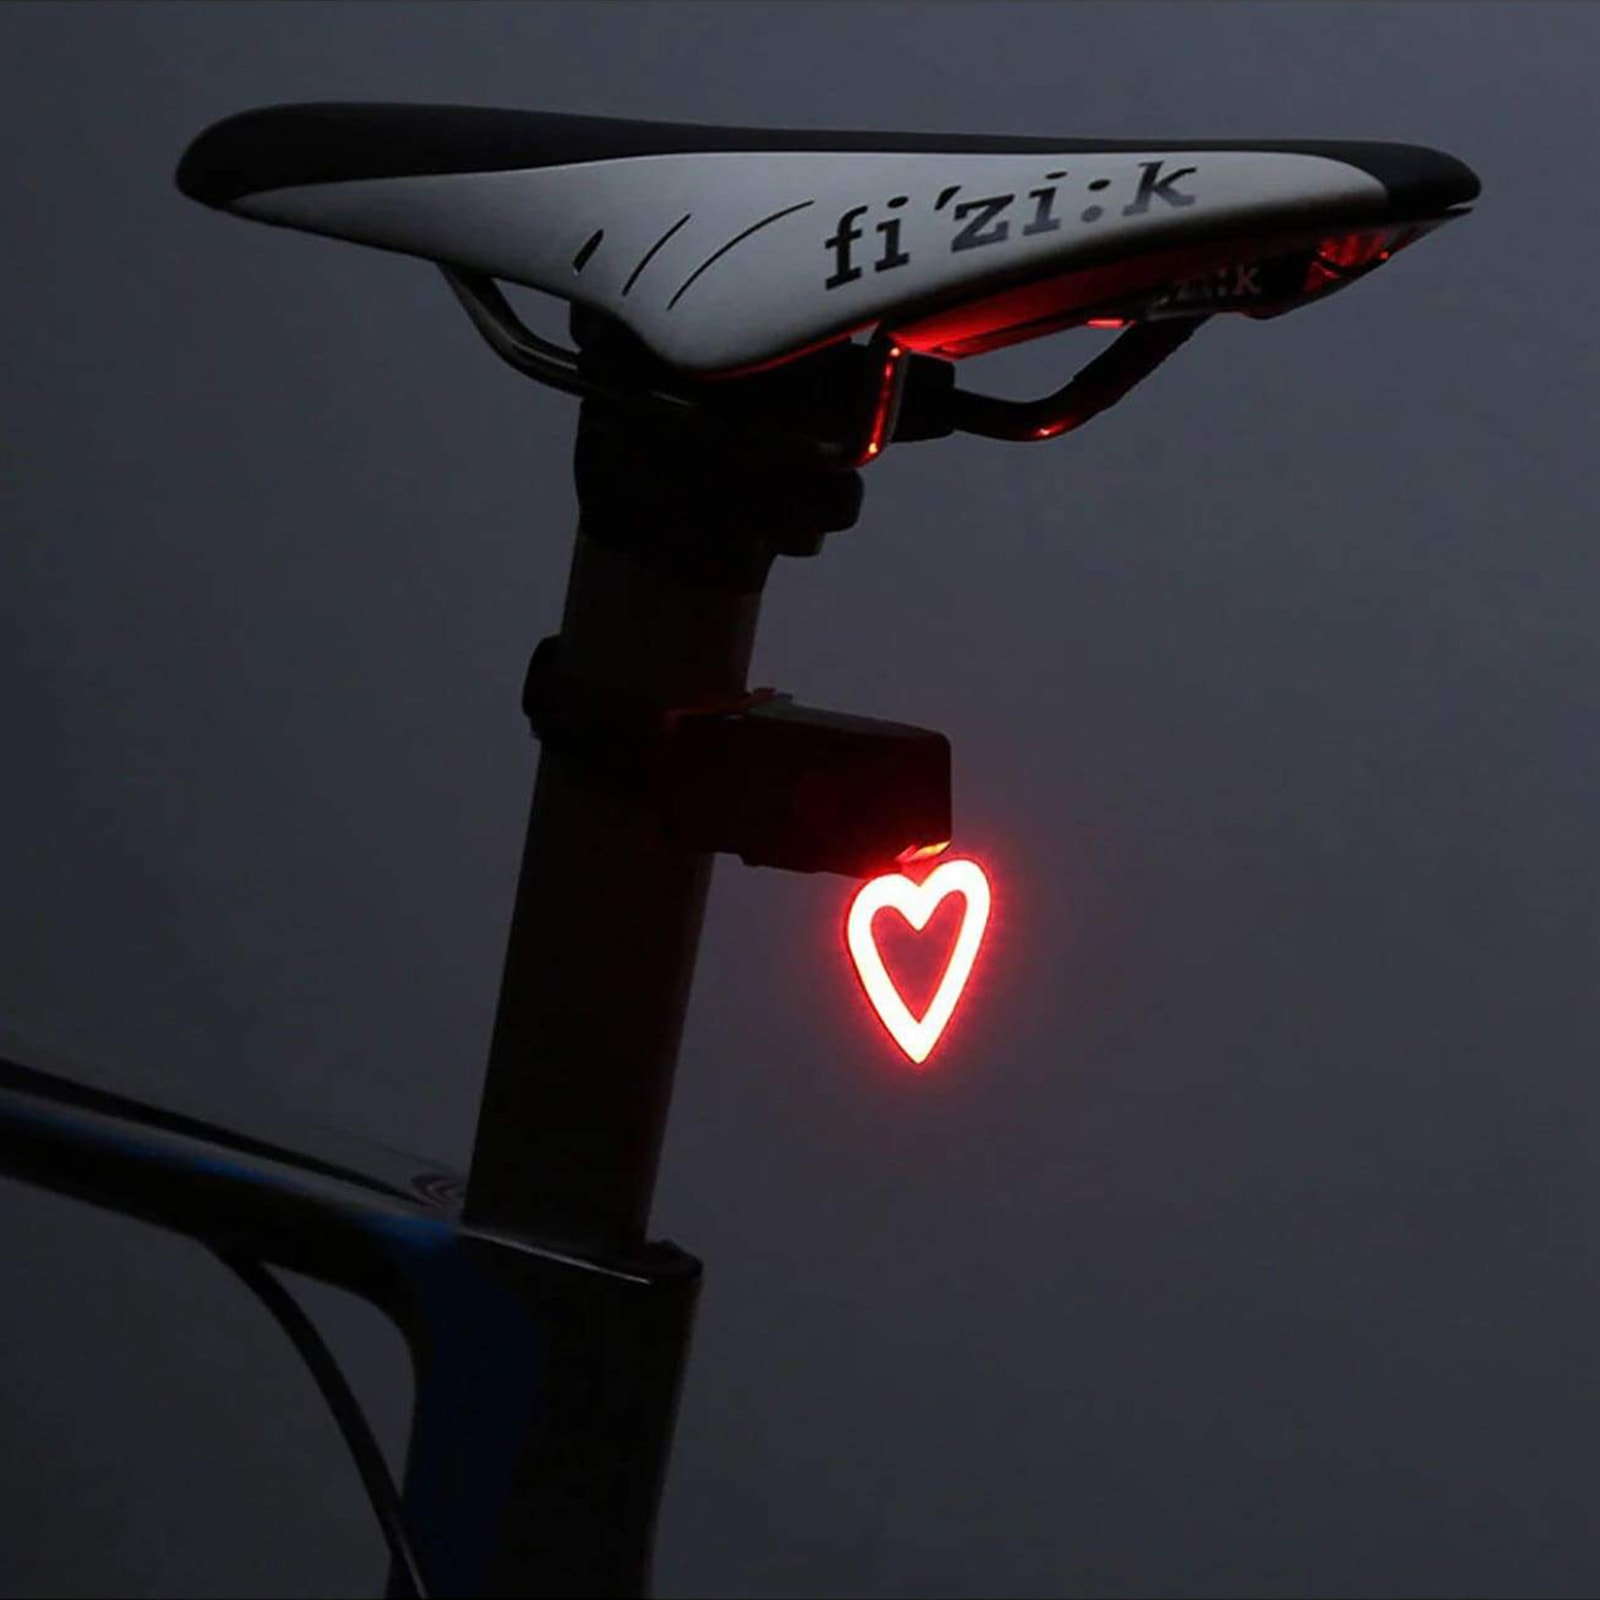 Practical but fun cycling gift idea - heart shaped led bike light